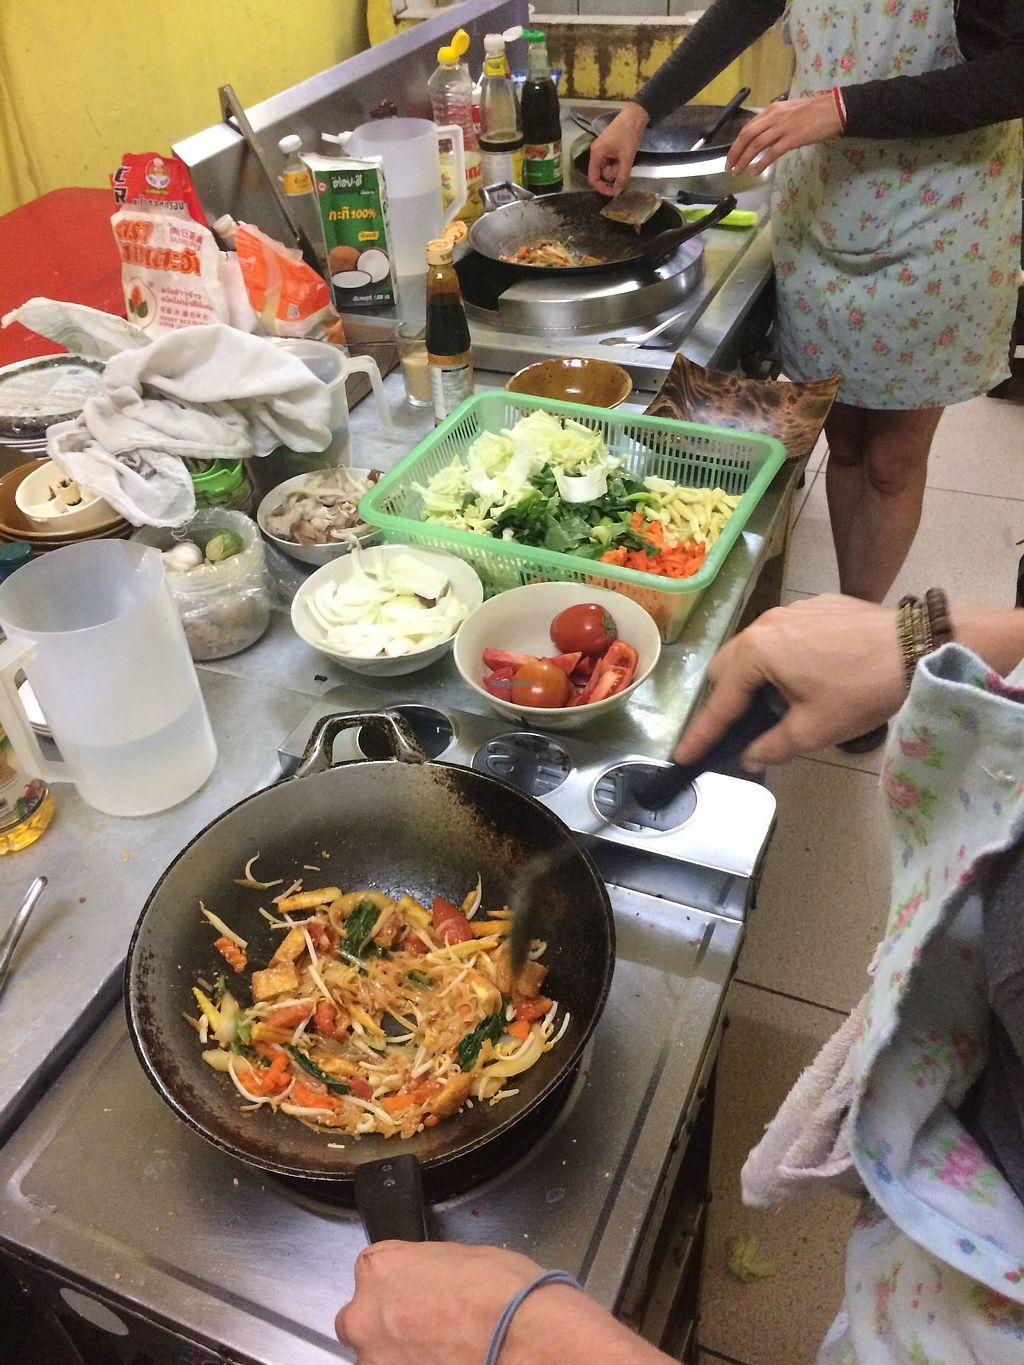 """Photo of Morning Glory  by <a href=""""/members/profile/LaurenceMontreuil"""">LaurenceMontreuil</a> <br/>vegan Thai cooking class <br/> February 9, 2018  - <a href='/contact/abuse/image/38567/356781'>Report</a>"""